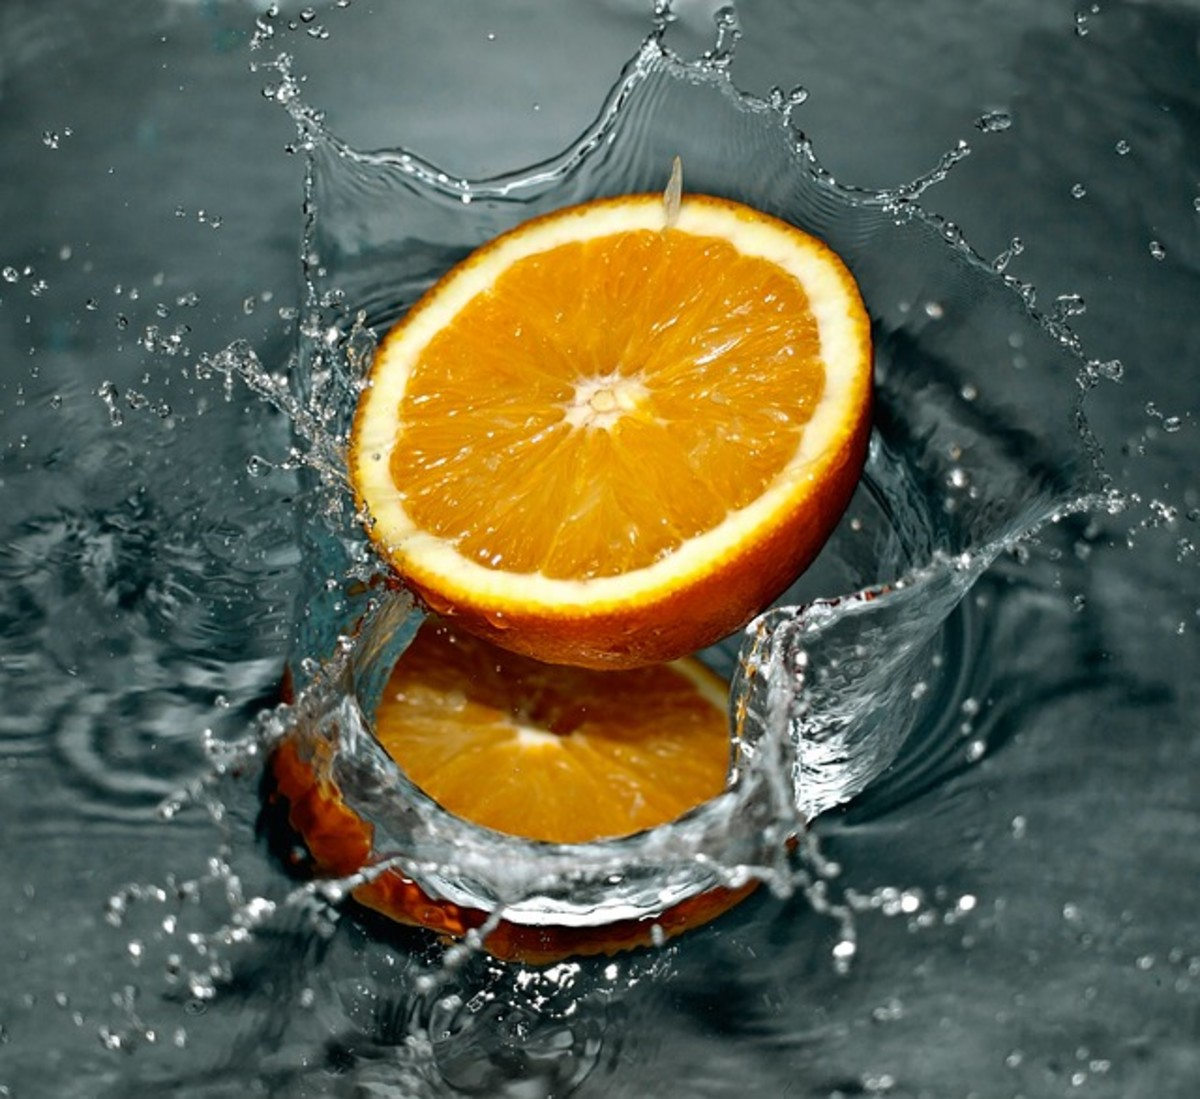 Staying hydrated is one of the most important choices you can make to curb cravings and control your weight. Don't like water? Put a little flavor in it with a slice of fruit.